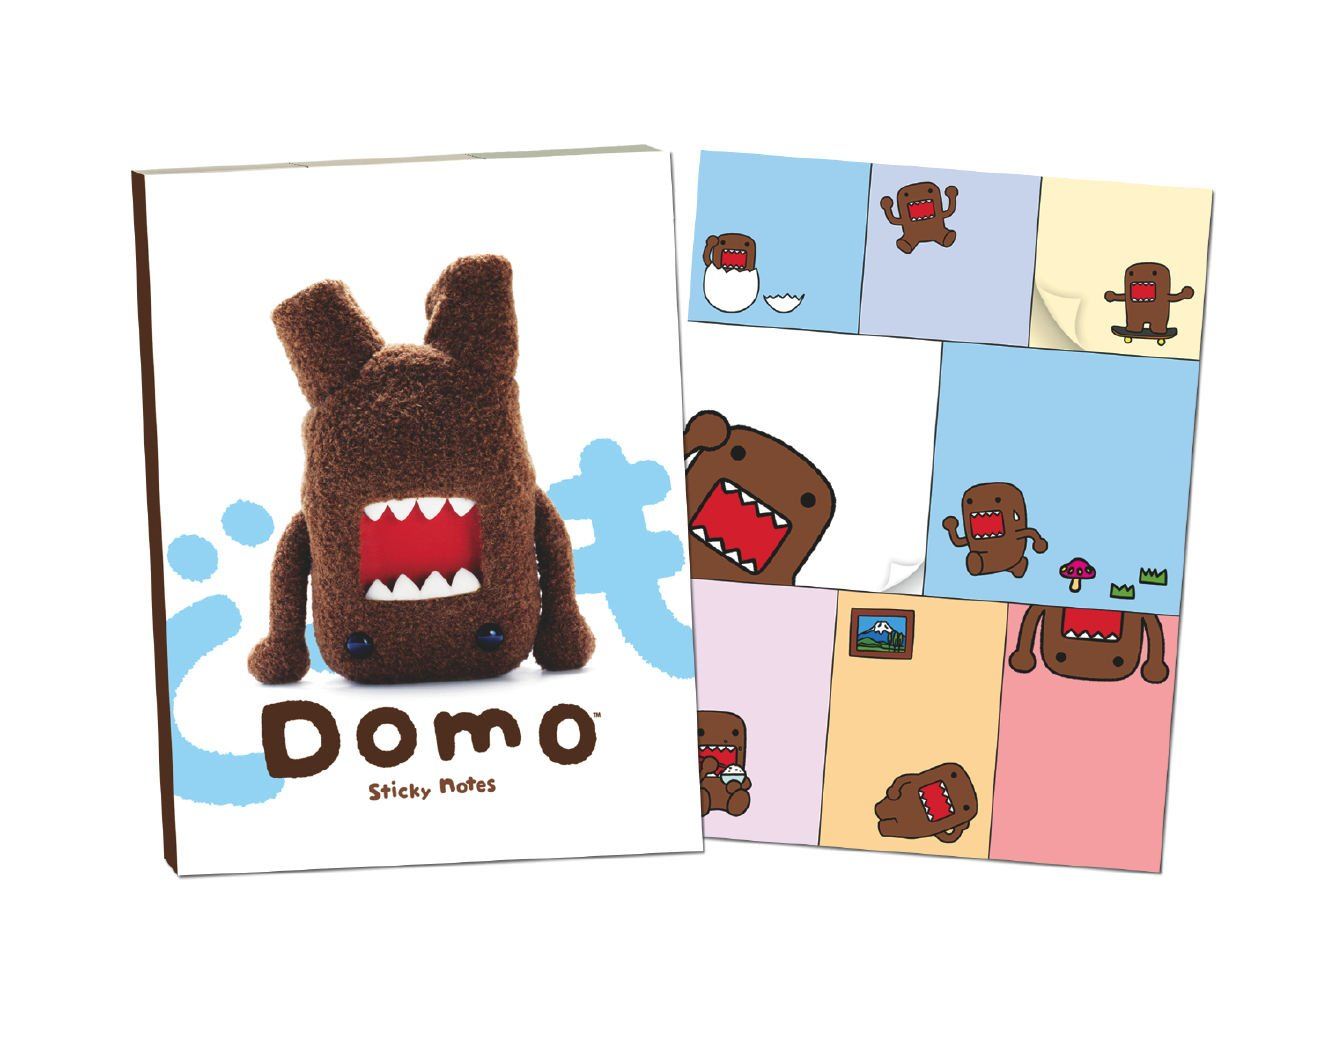 Domo Sticky Note book from Dark Horse